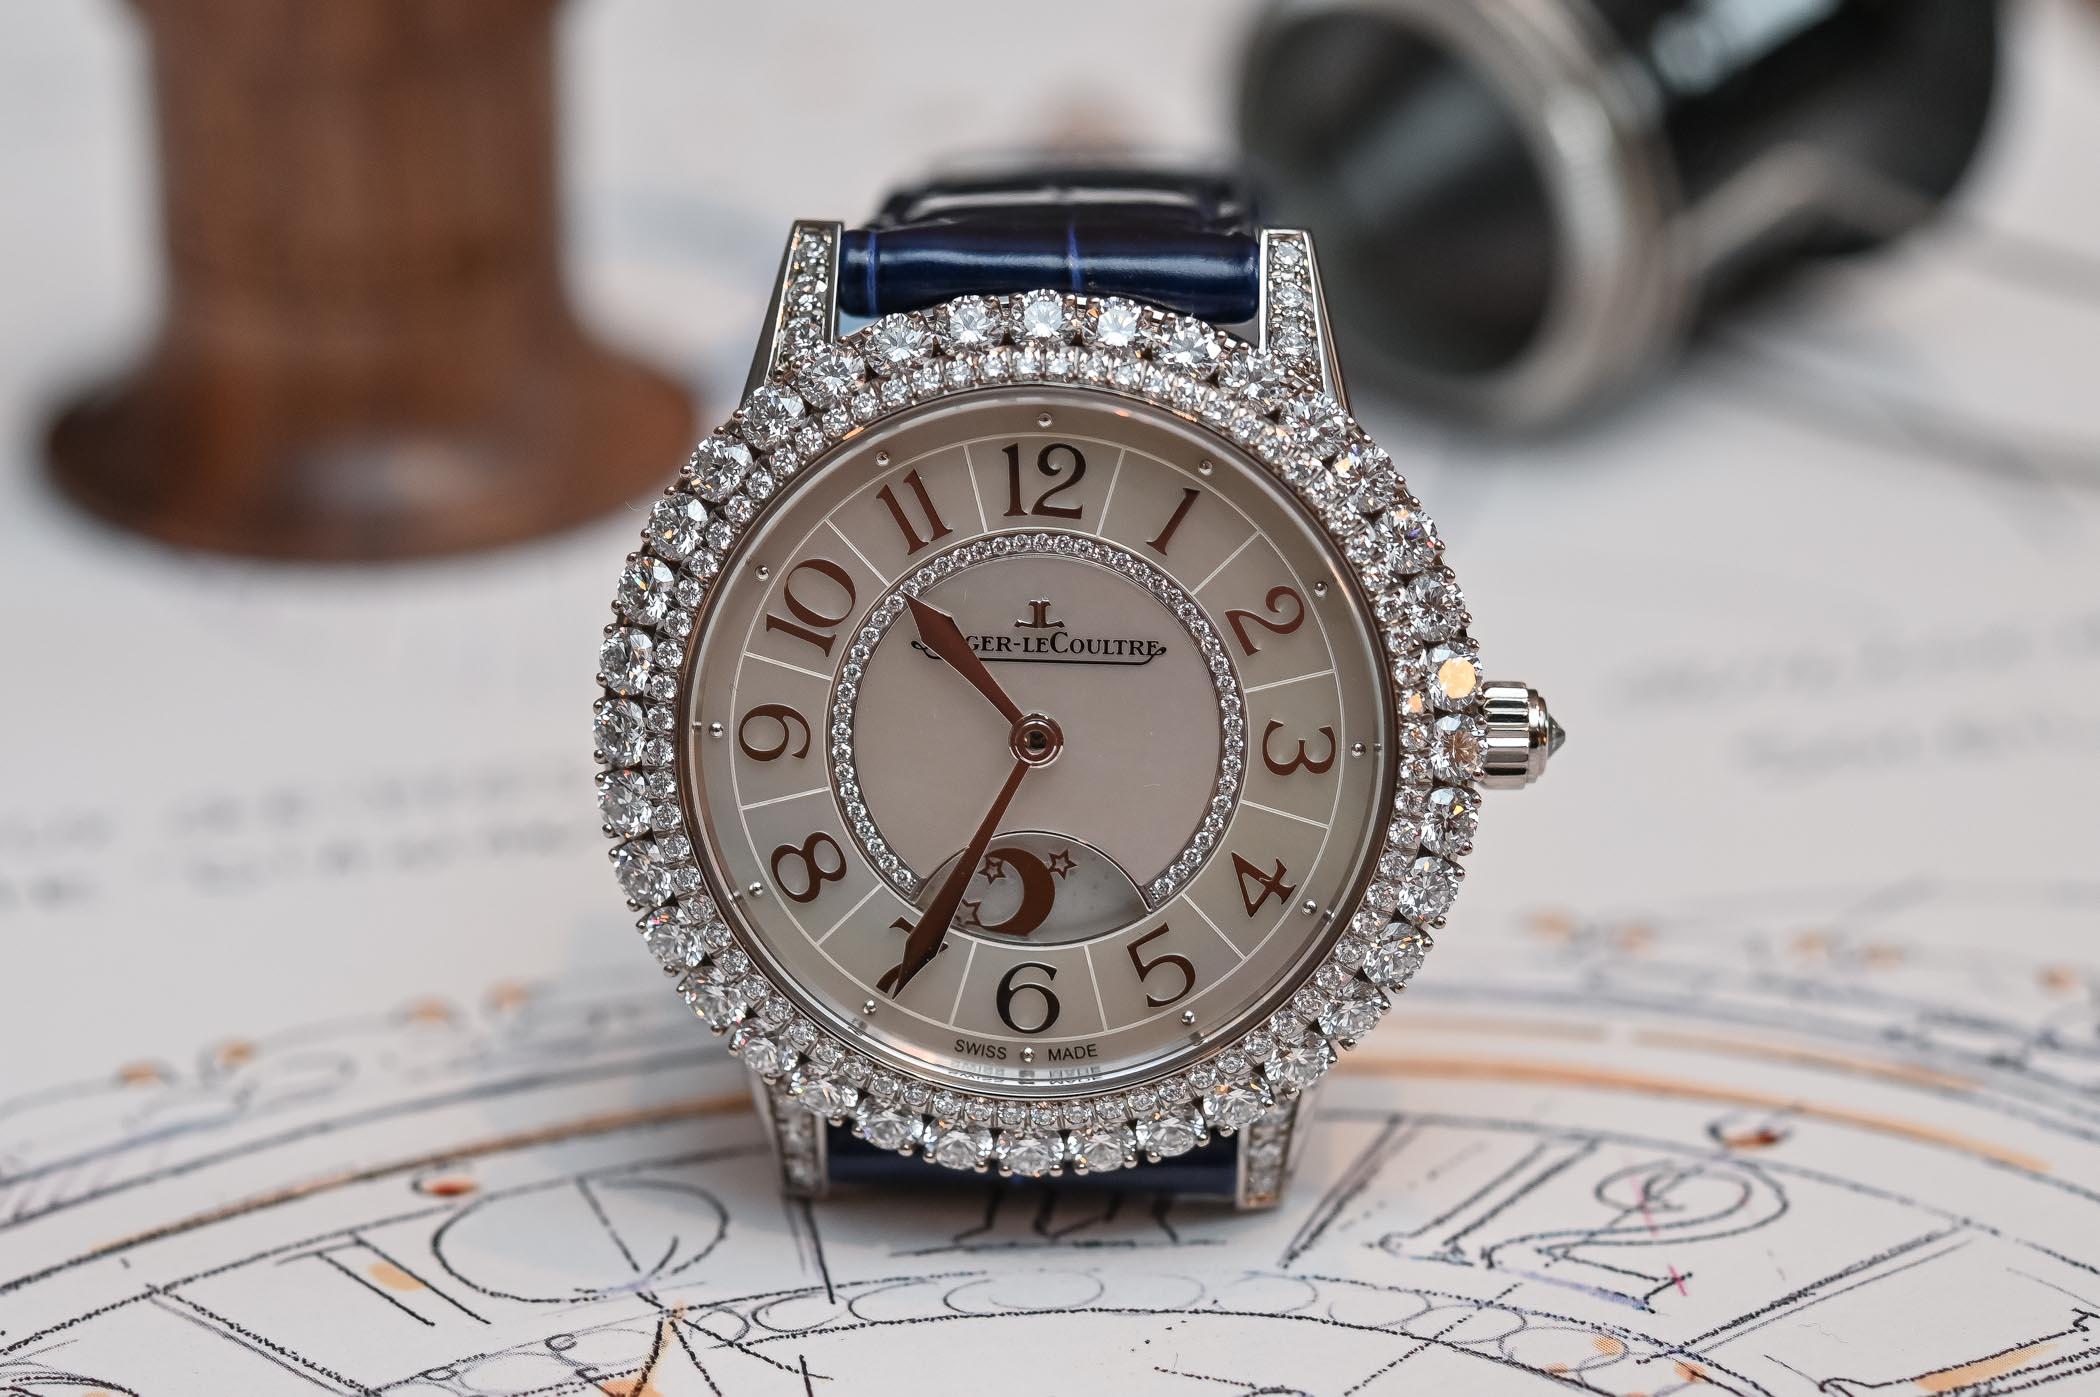 Jaeger-LeCoultre Rendez-Vous Night and Day Jewellery Watch - 4